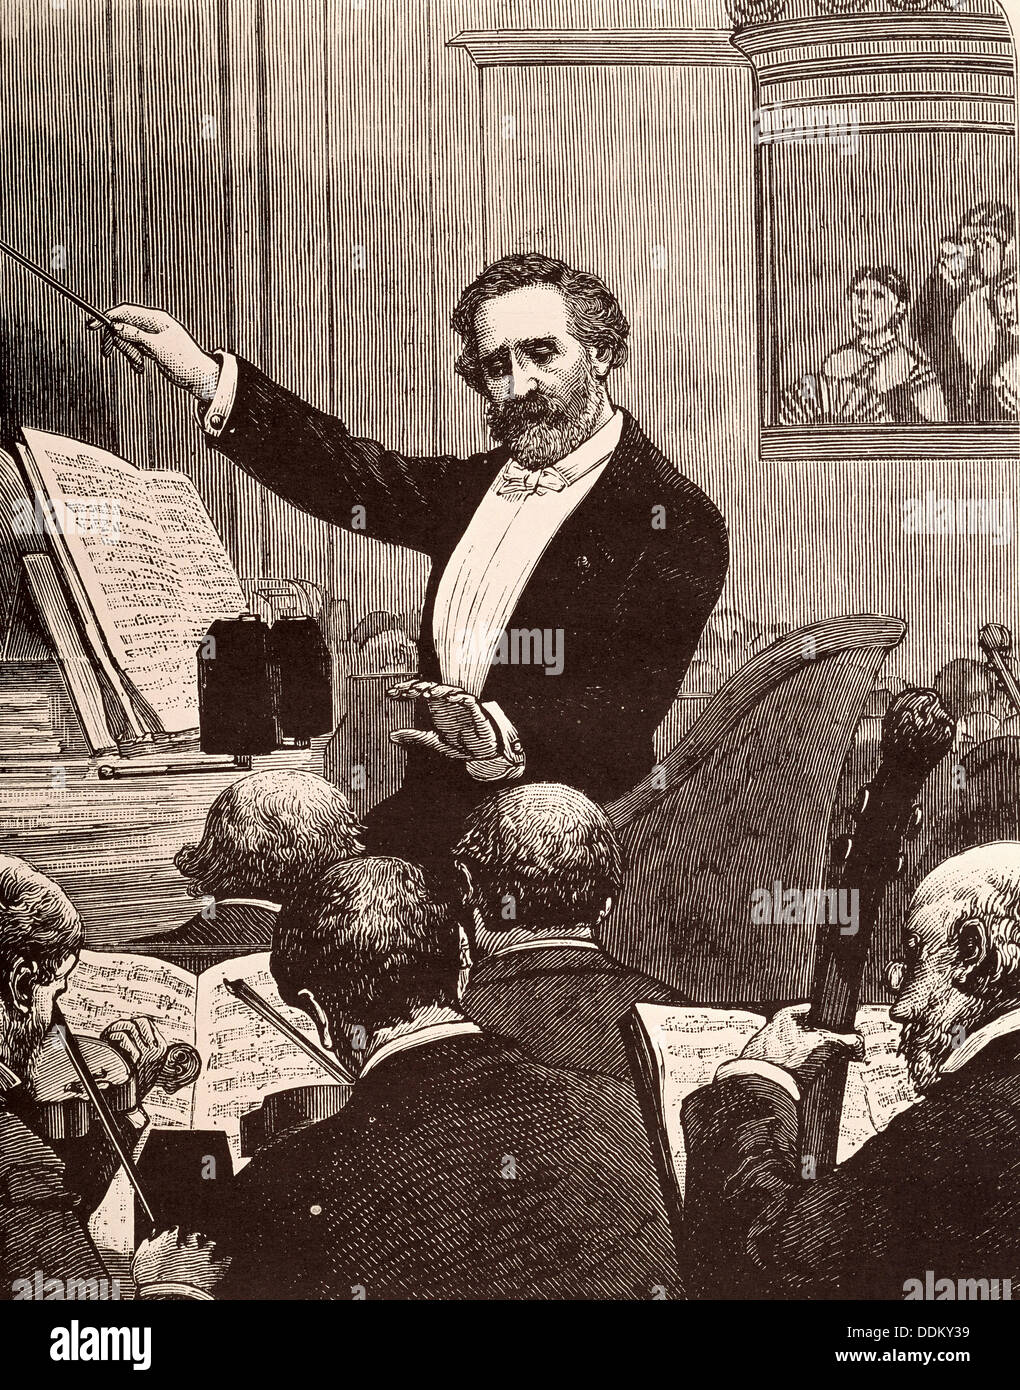 Giuseppe Verdi conducting one of his operas - Stock Image